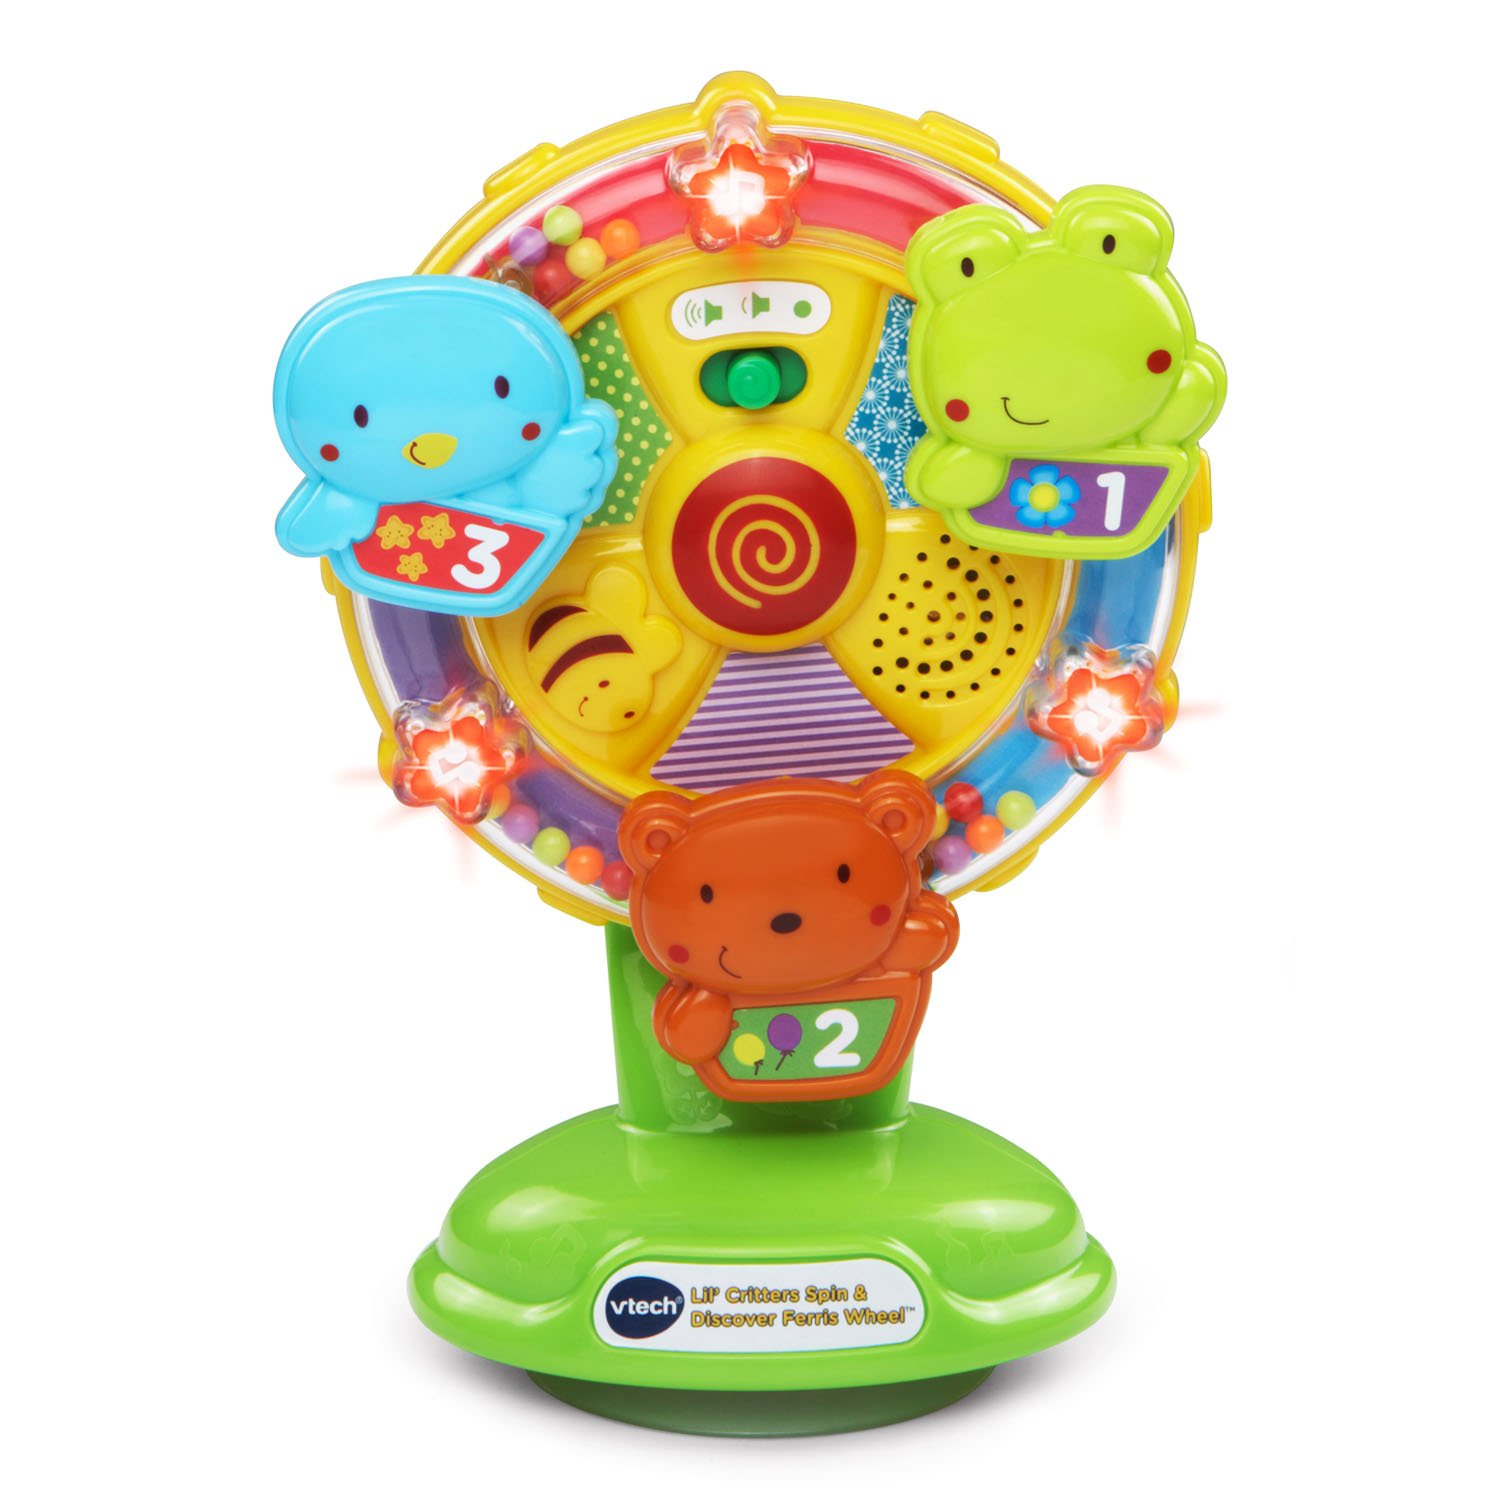 VTech Baby Lil' Critters Spin and Discover Ferris Wheel (Frustration Free Packaging) by VTech